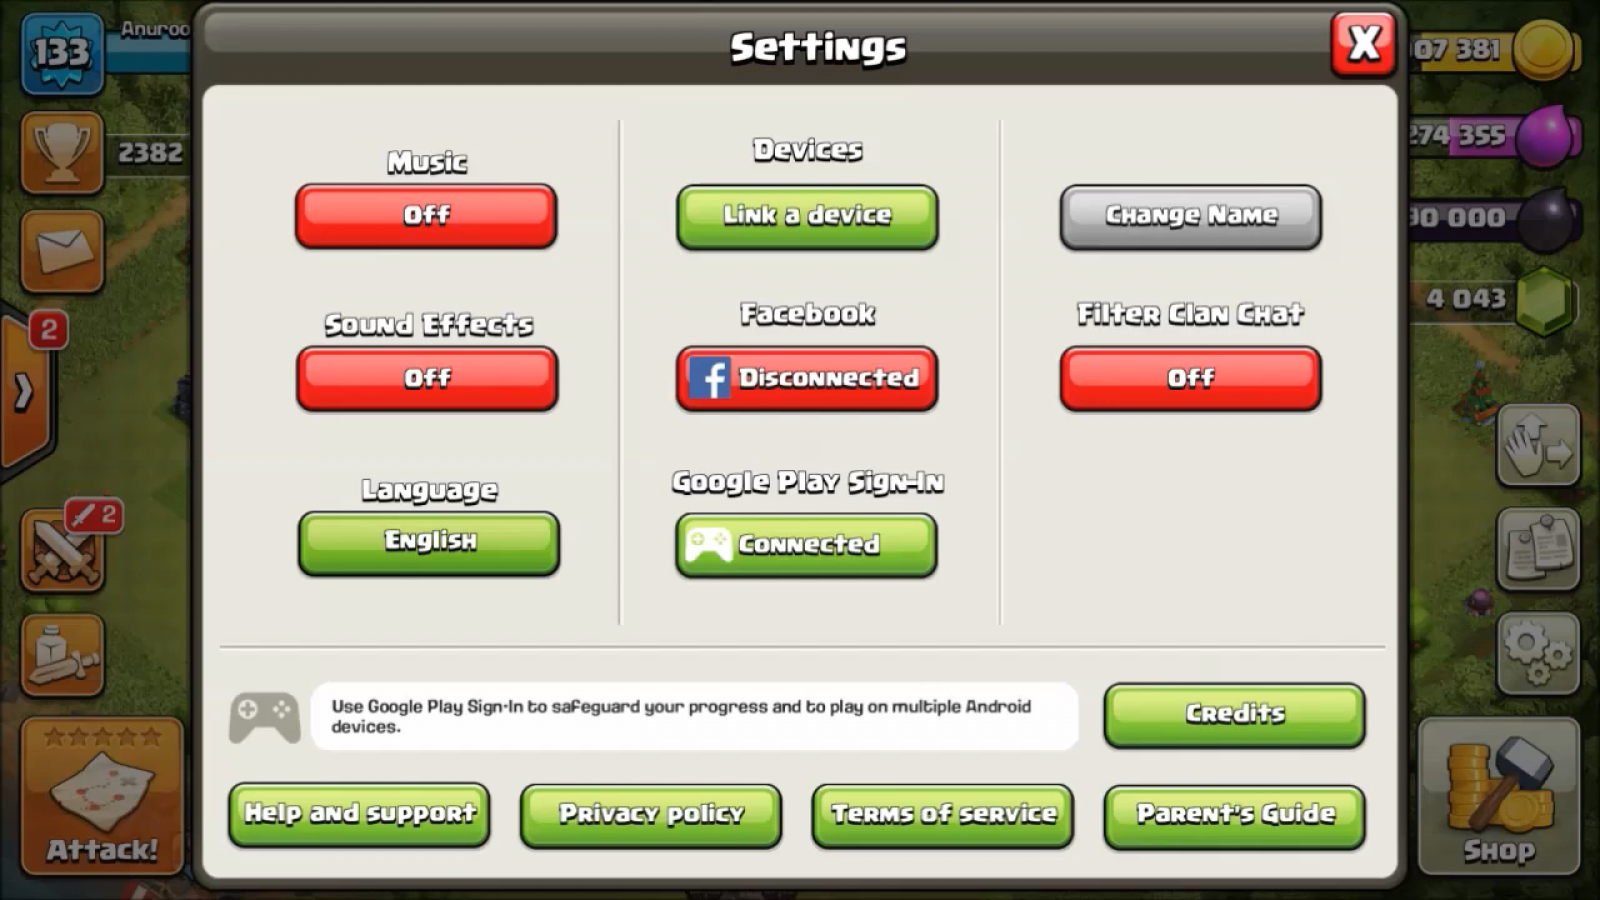 Clash of Clans' June Update Adds Name Changes, Layout Copy for Town